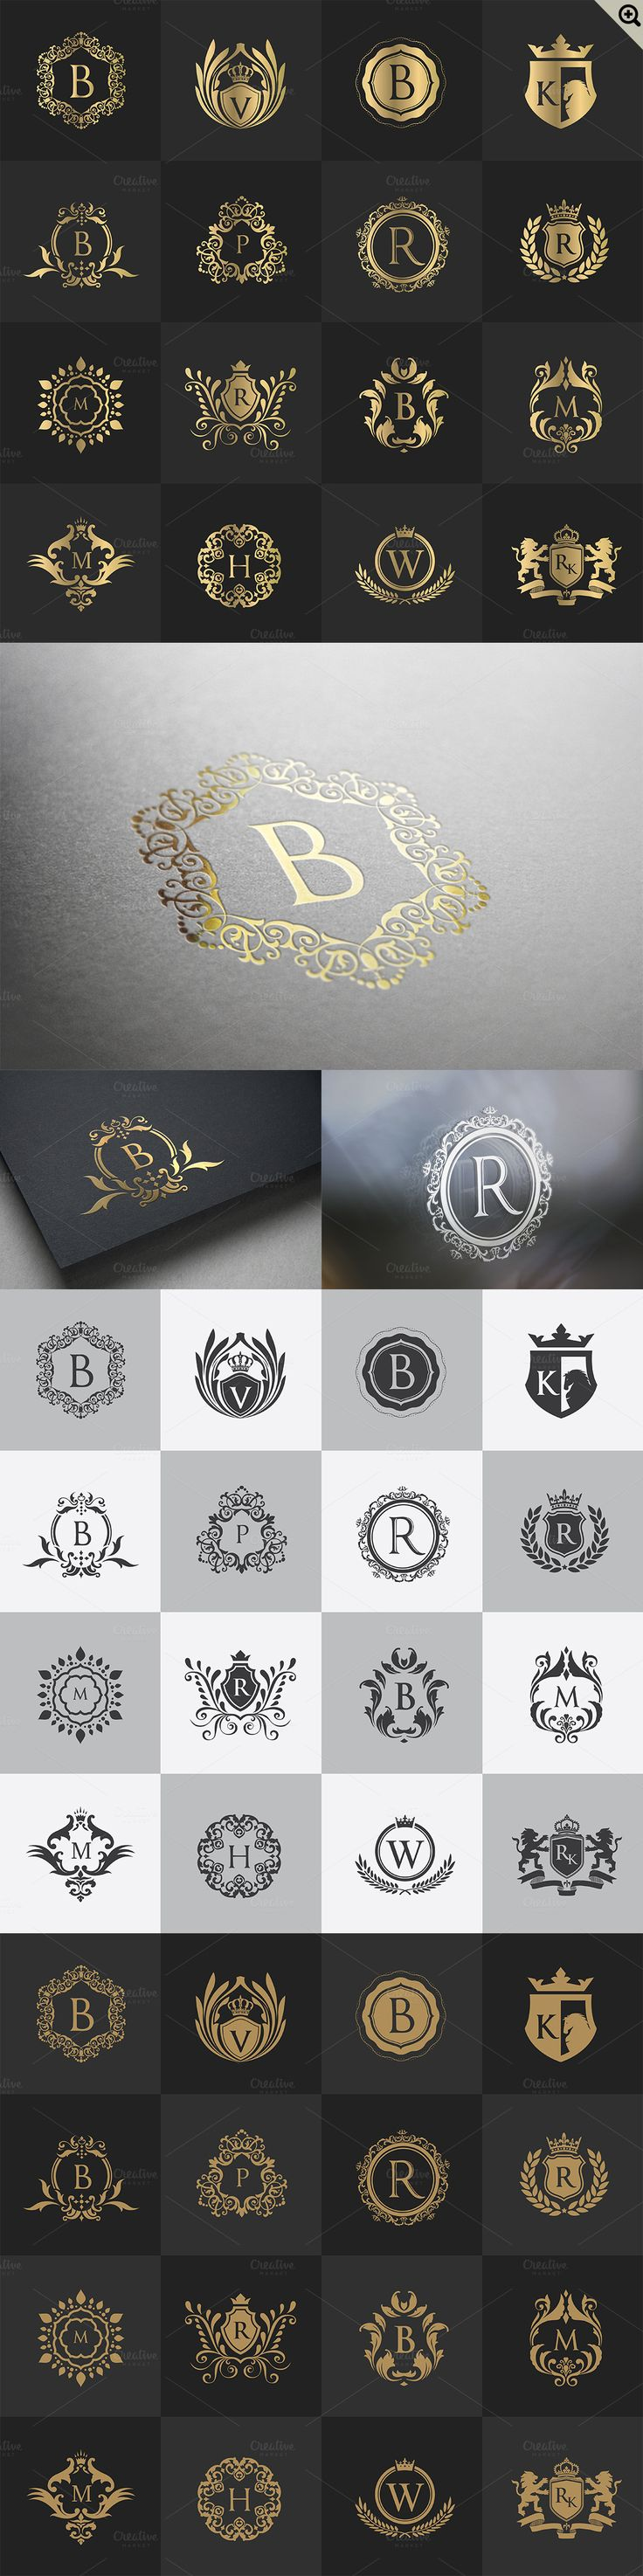 32 Luxury logo set by Super Pig Shop on @creativemarket